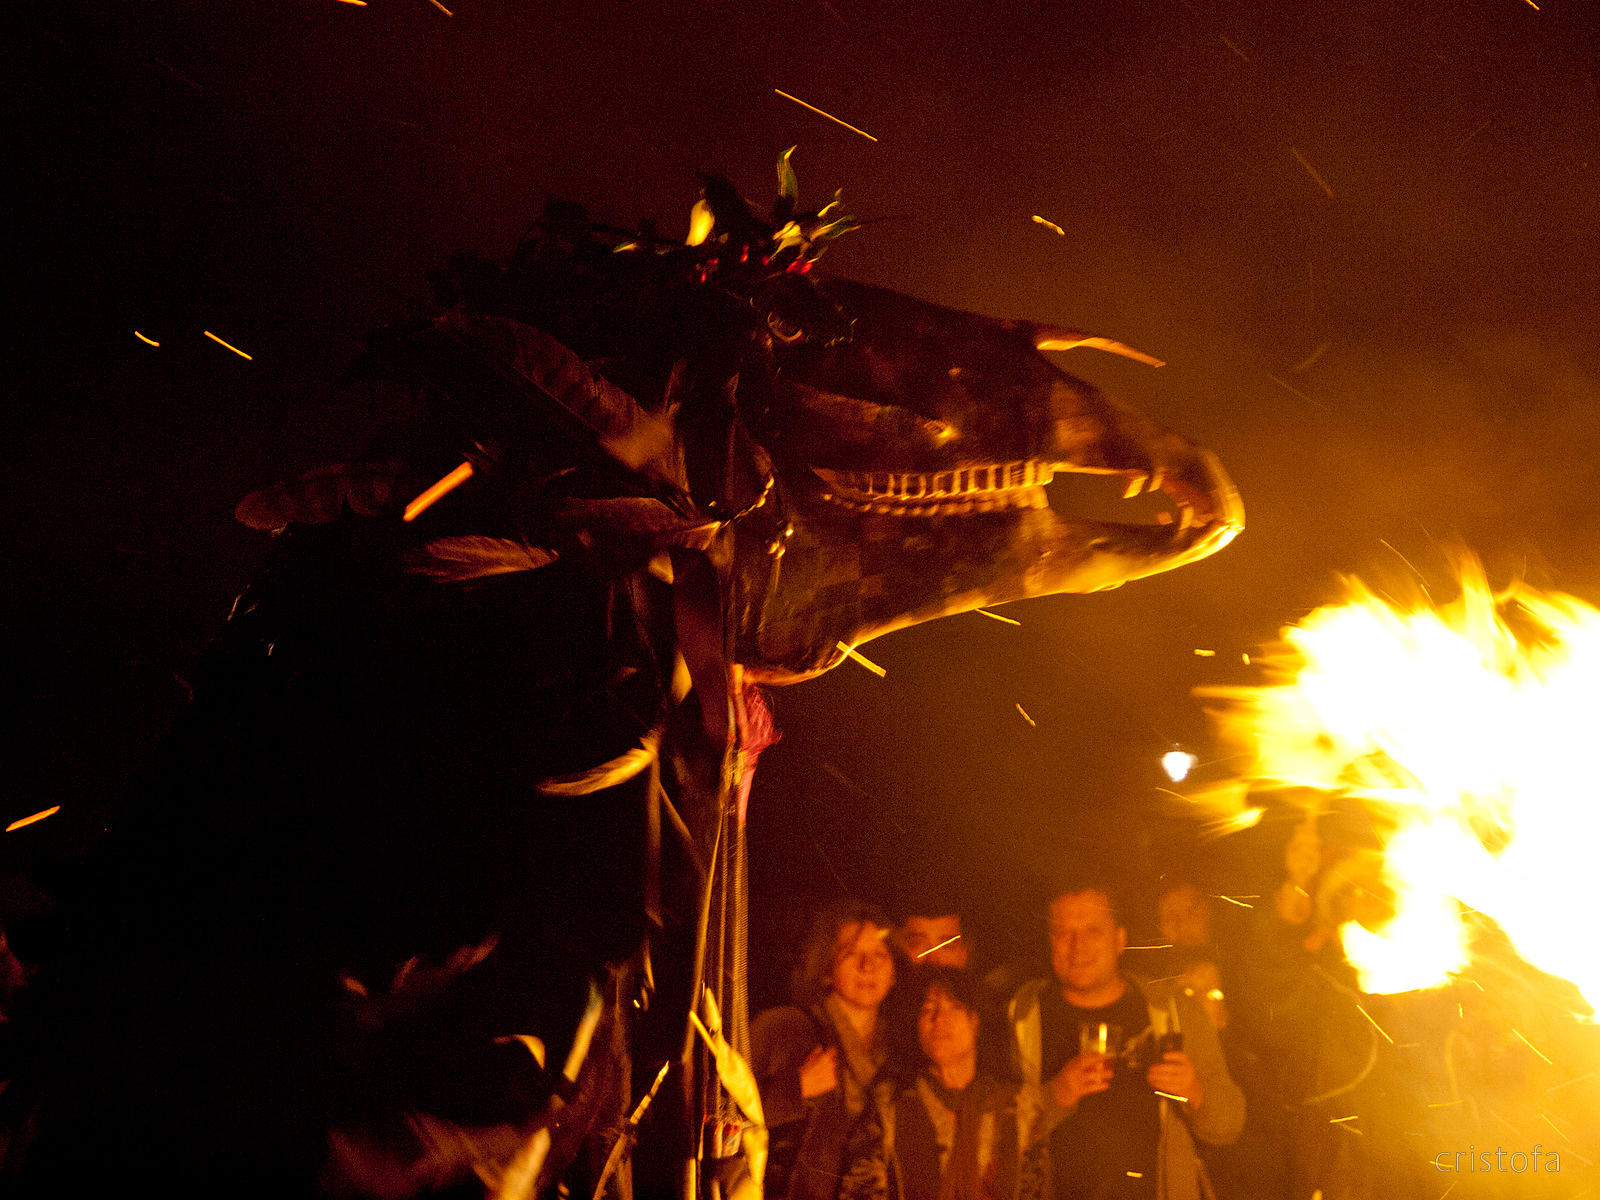 Montol - winter solstice celebrations in Penzance